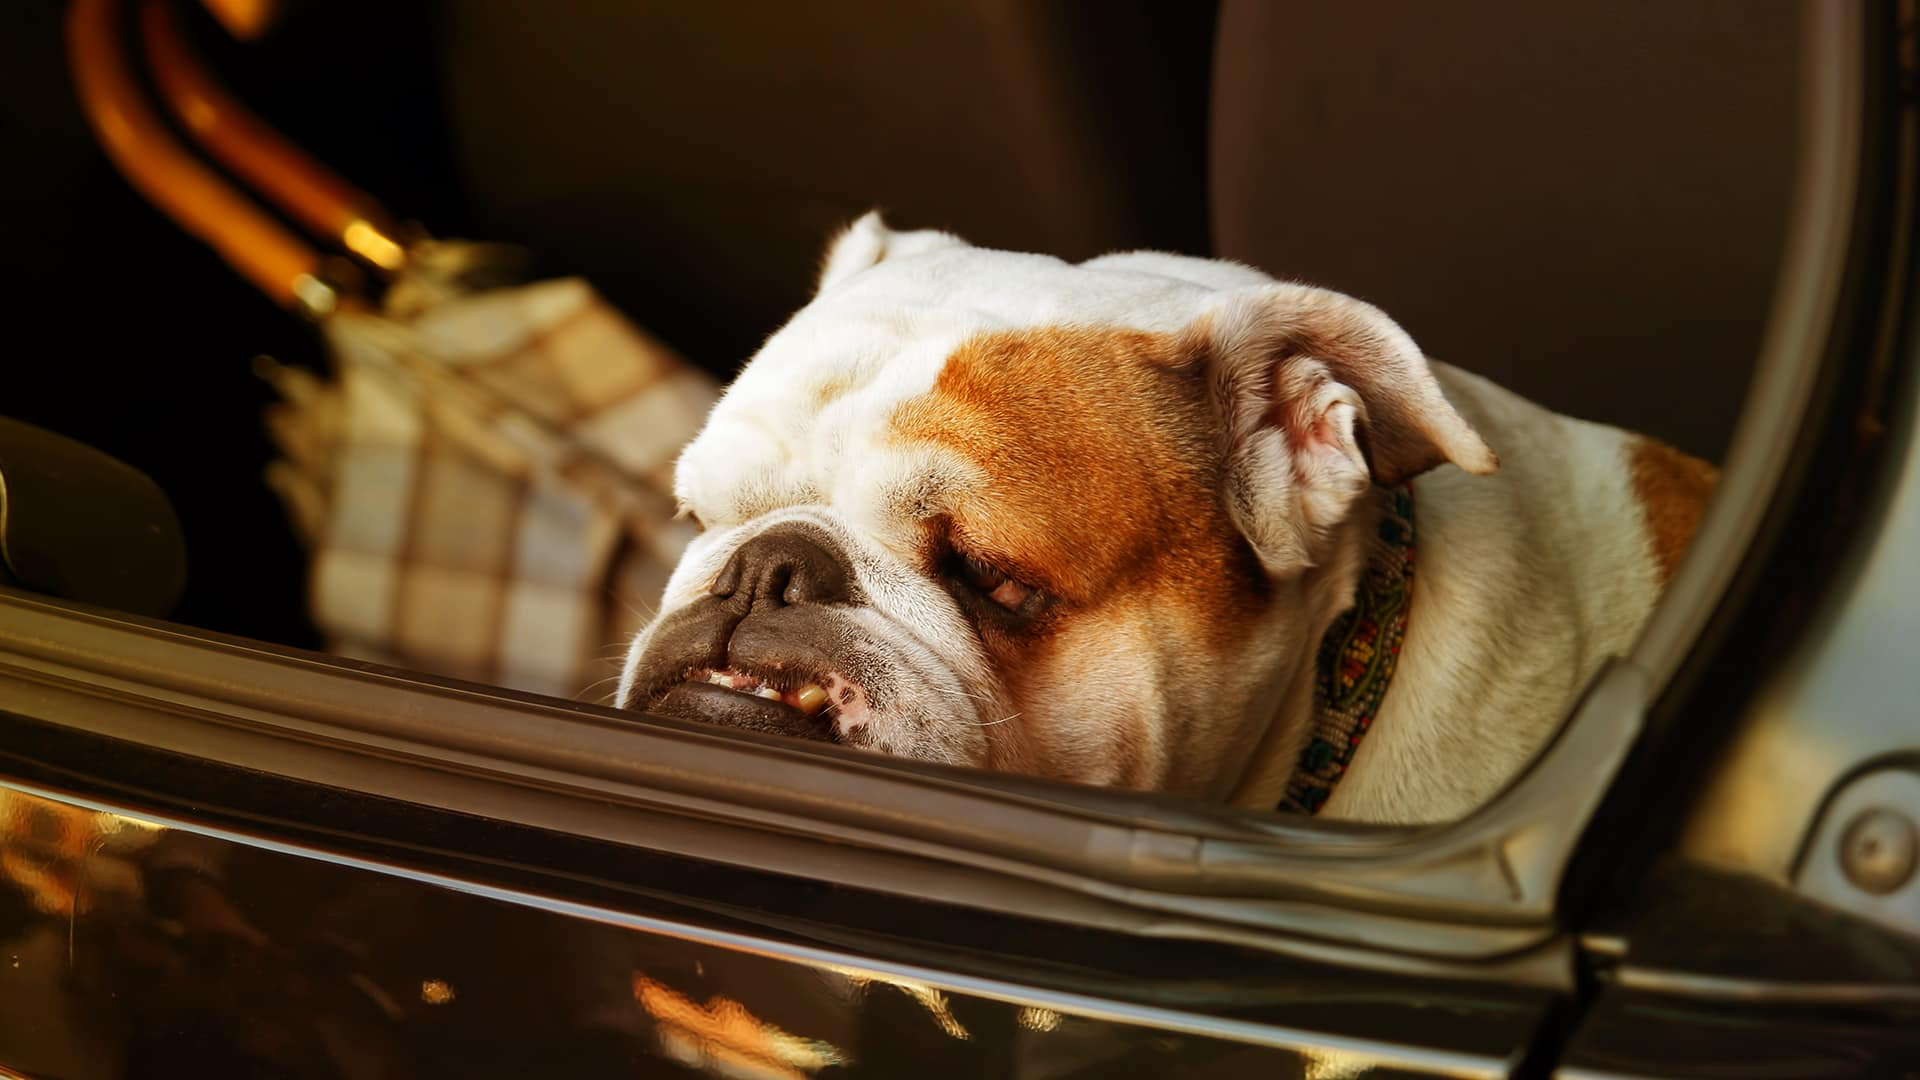 Dogs riding in cars – 7 helpful tips